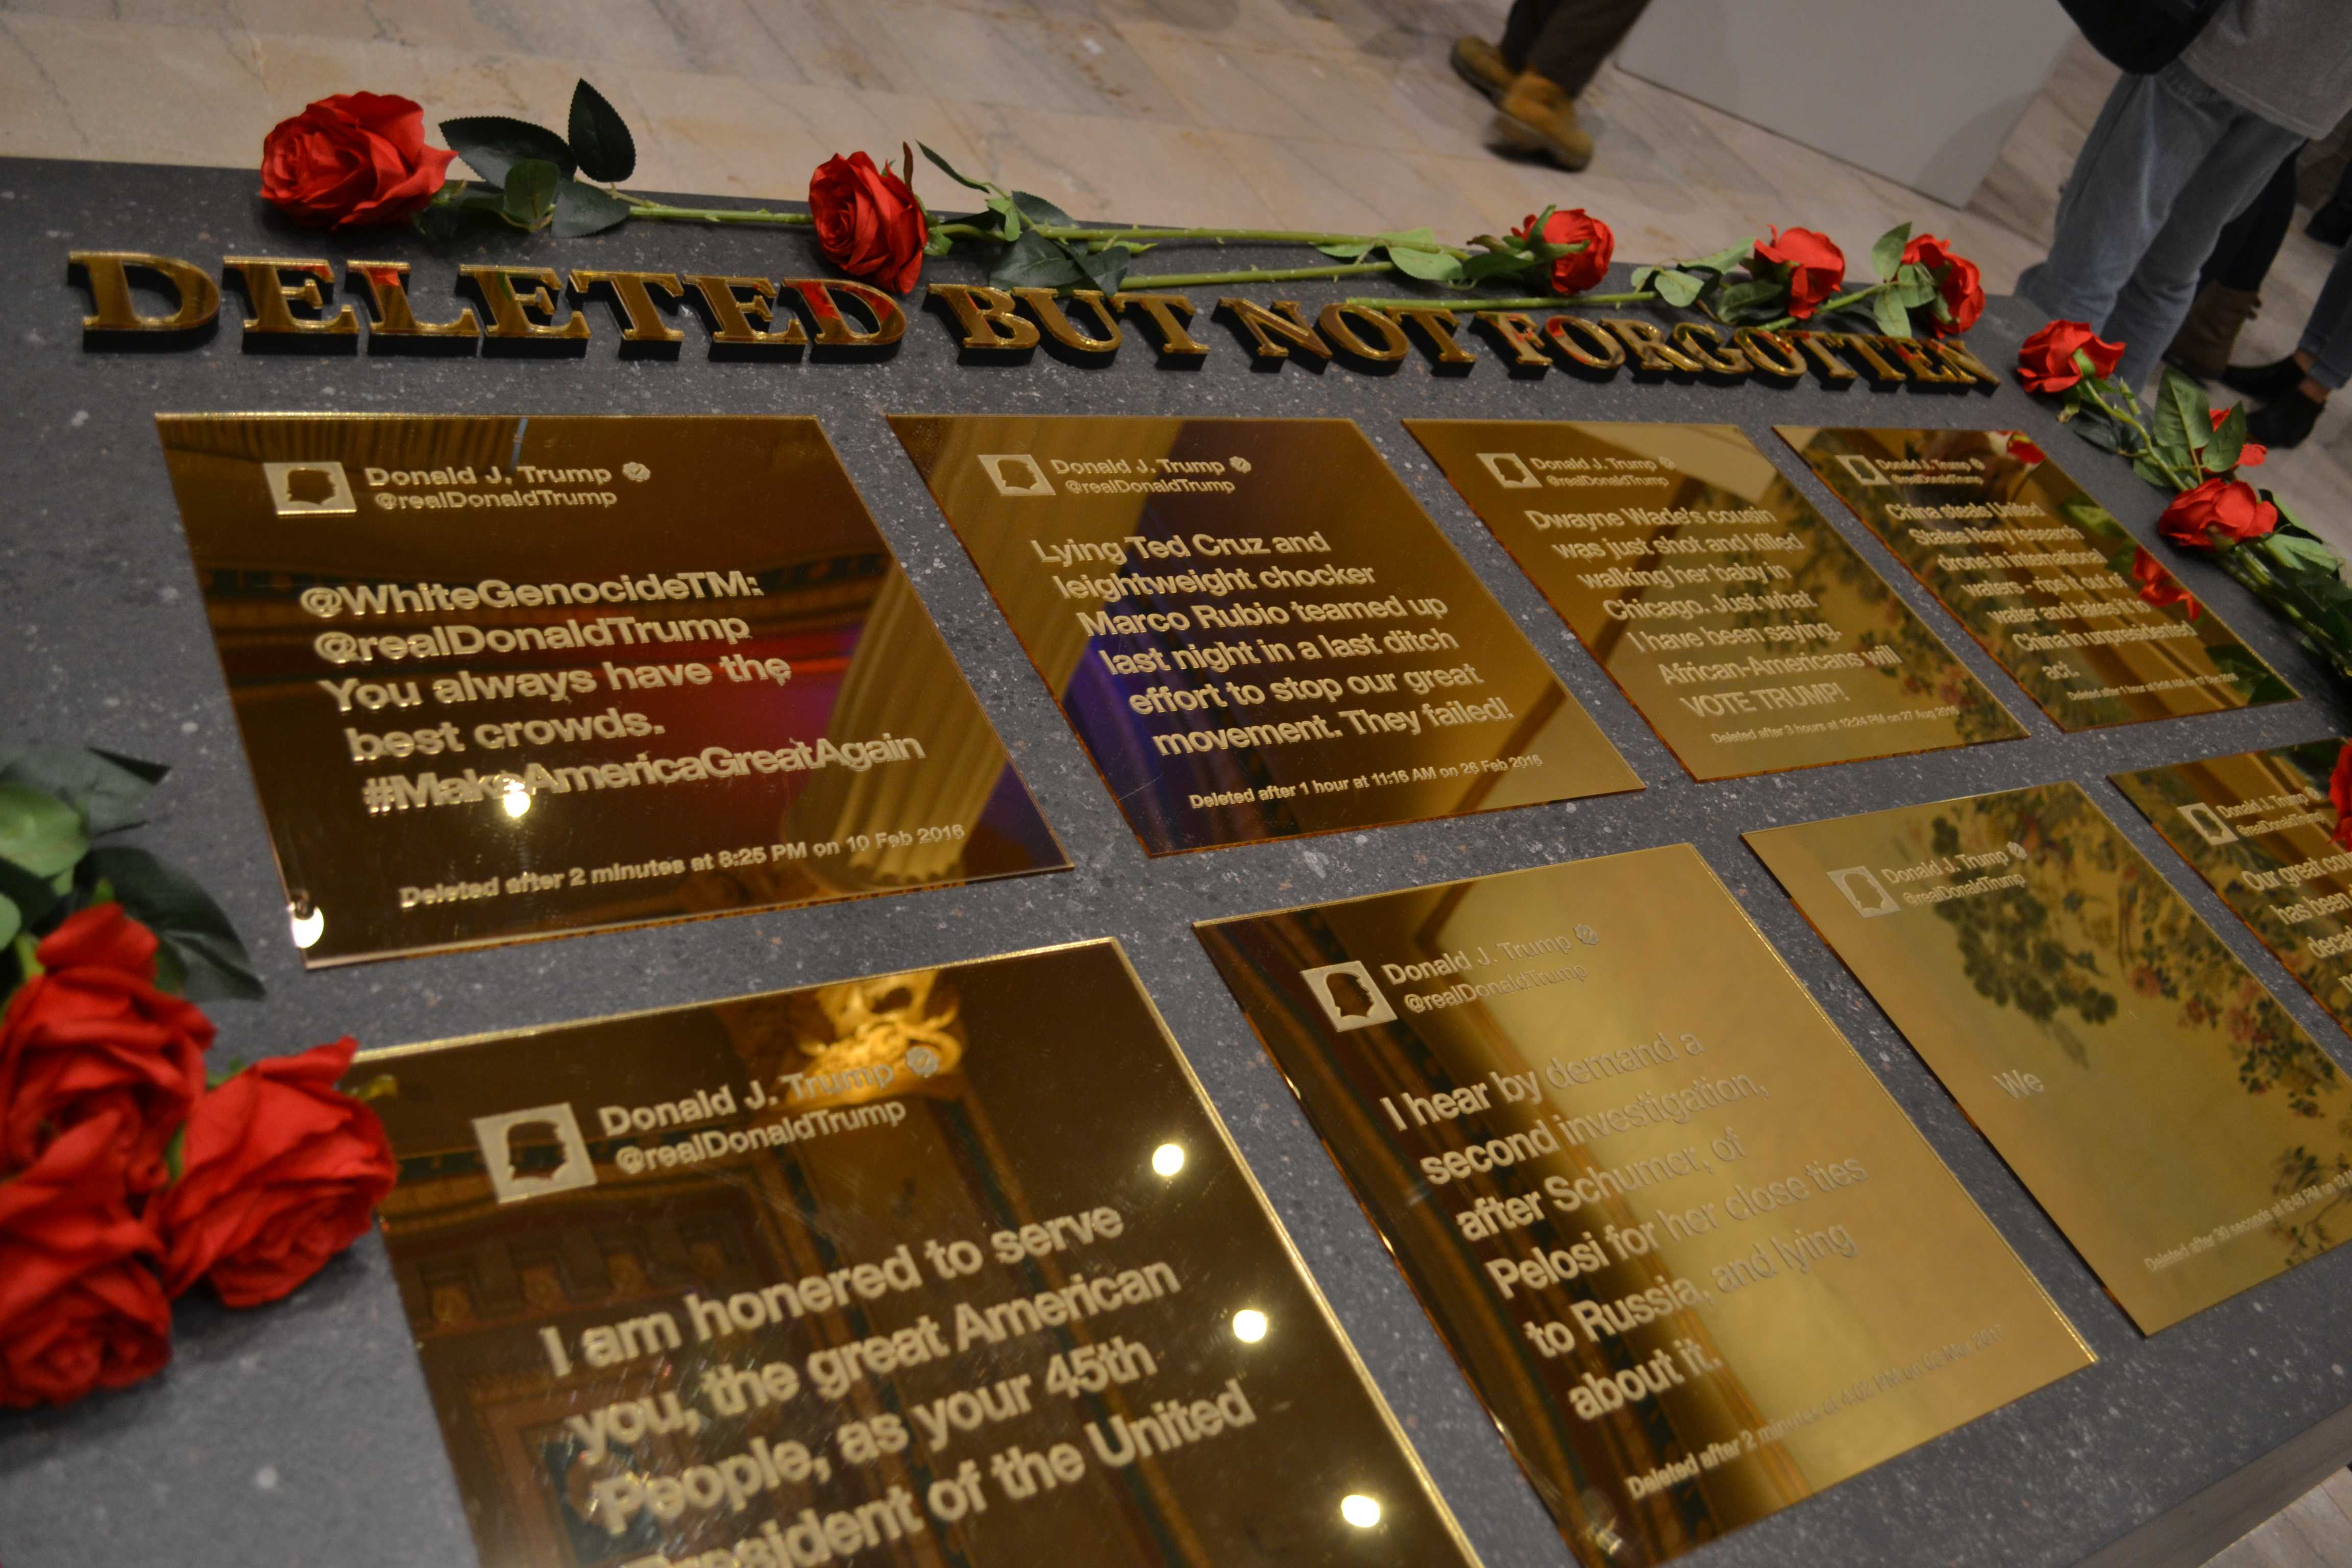 """""""Deleted But Not Forgotten"""" showcases some of President Trump's deleted tweets throughout his presidency, memorialized in gold plaques. (Ben Conboy/The DePaulia)"""